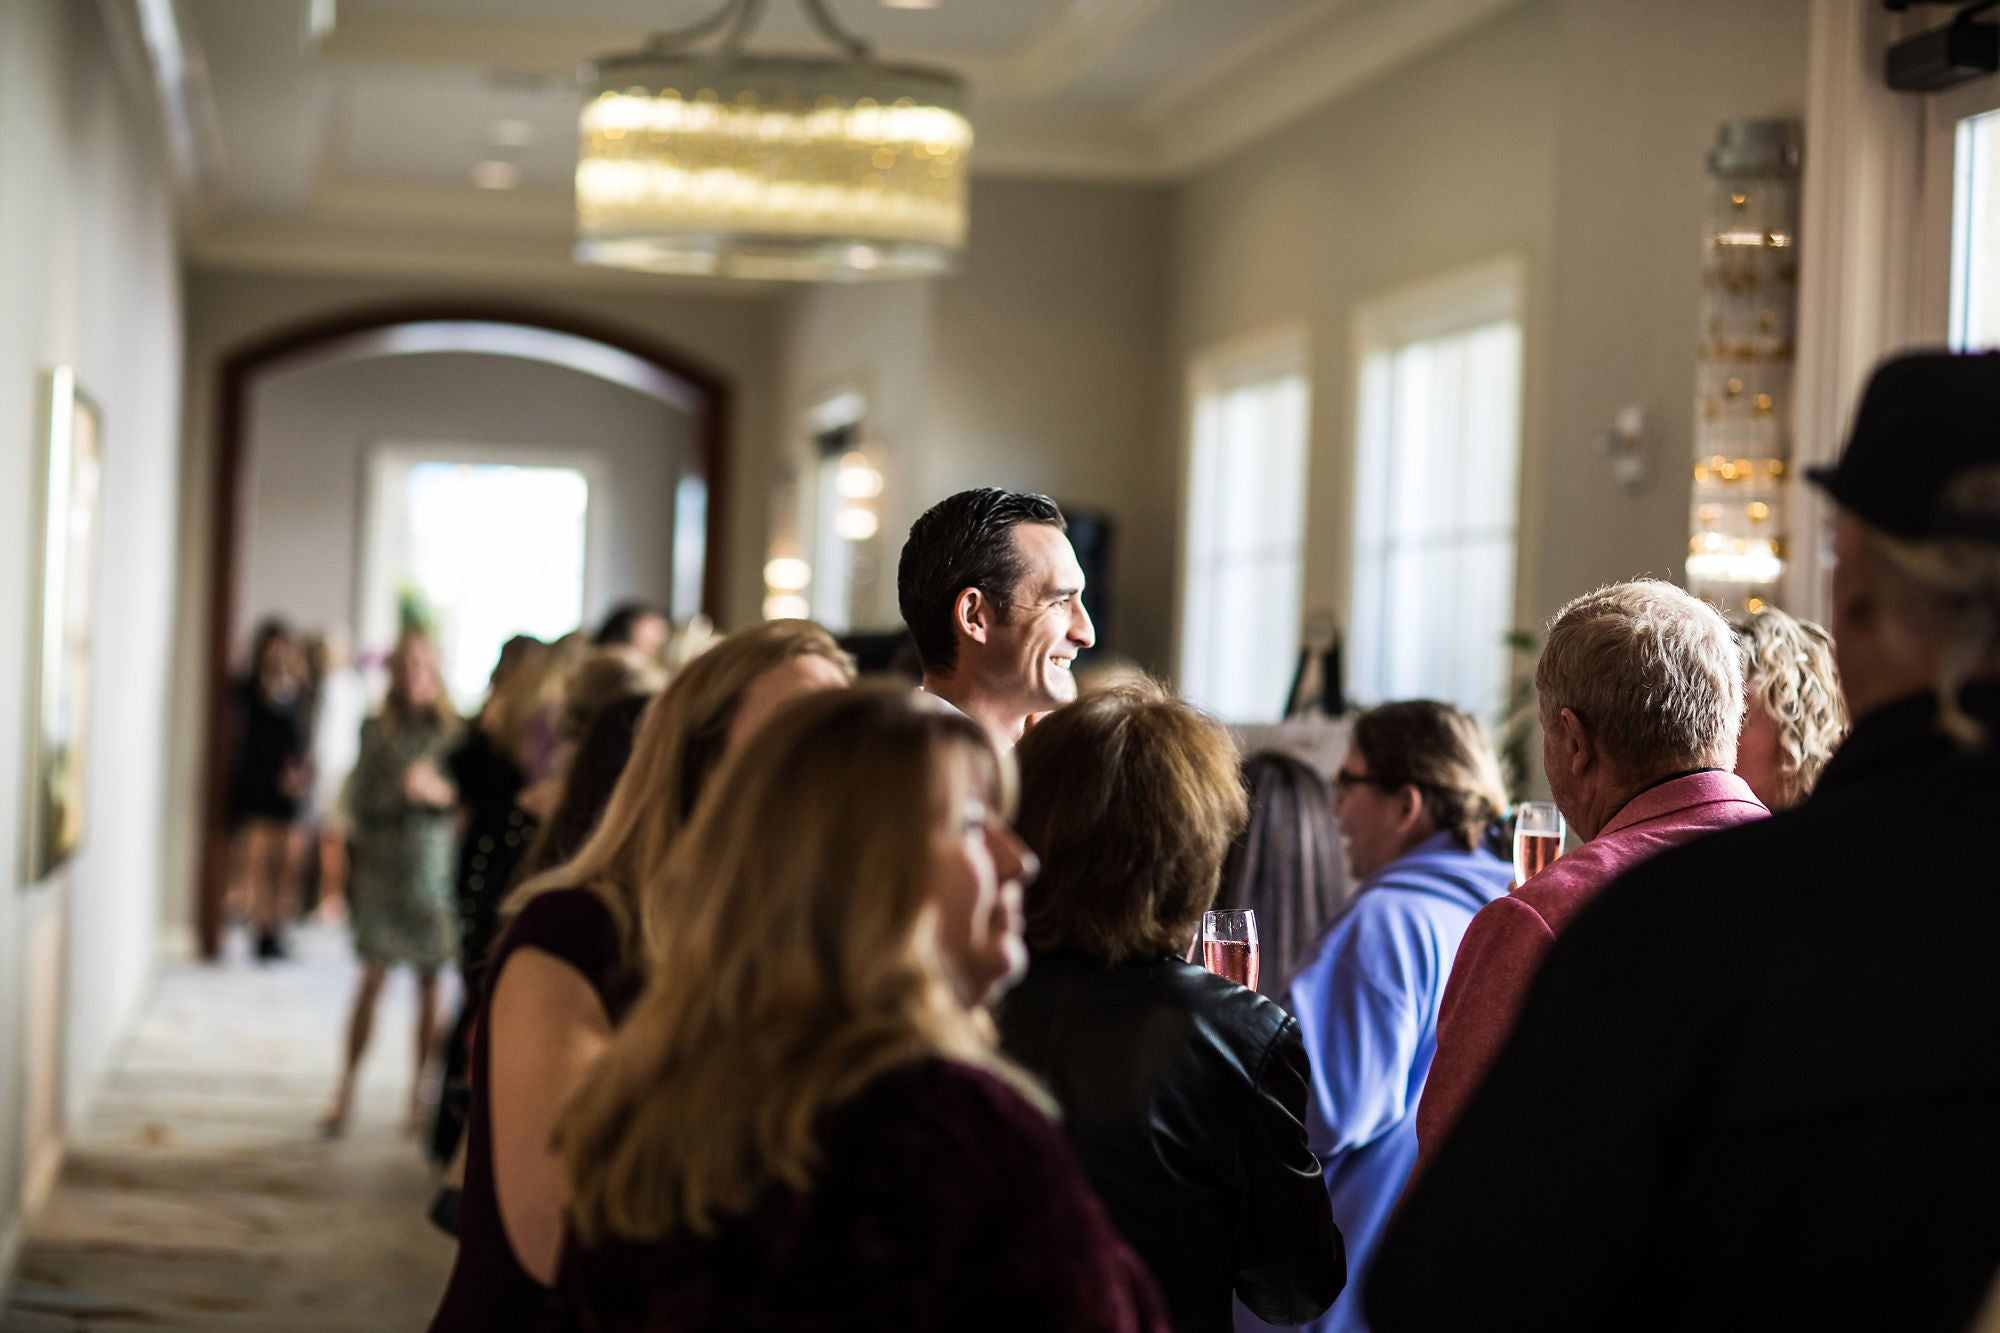 A man in focus among the crowd in a hallway